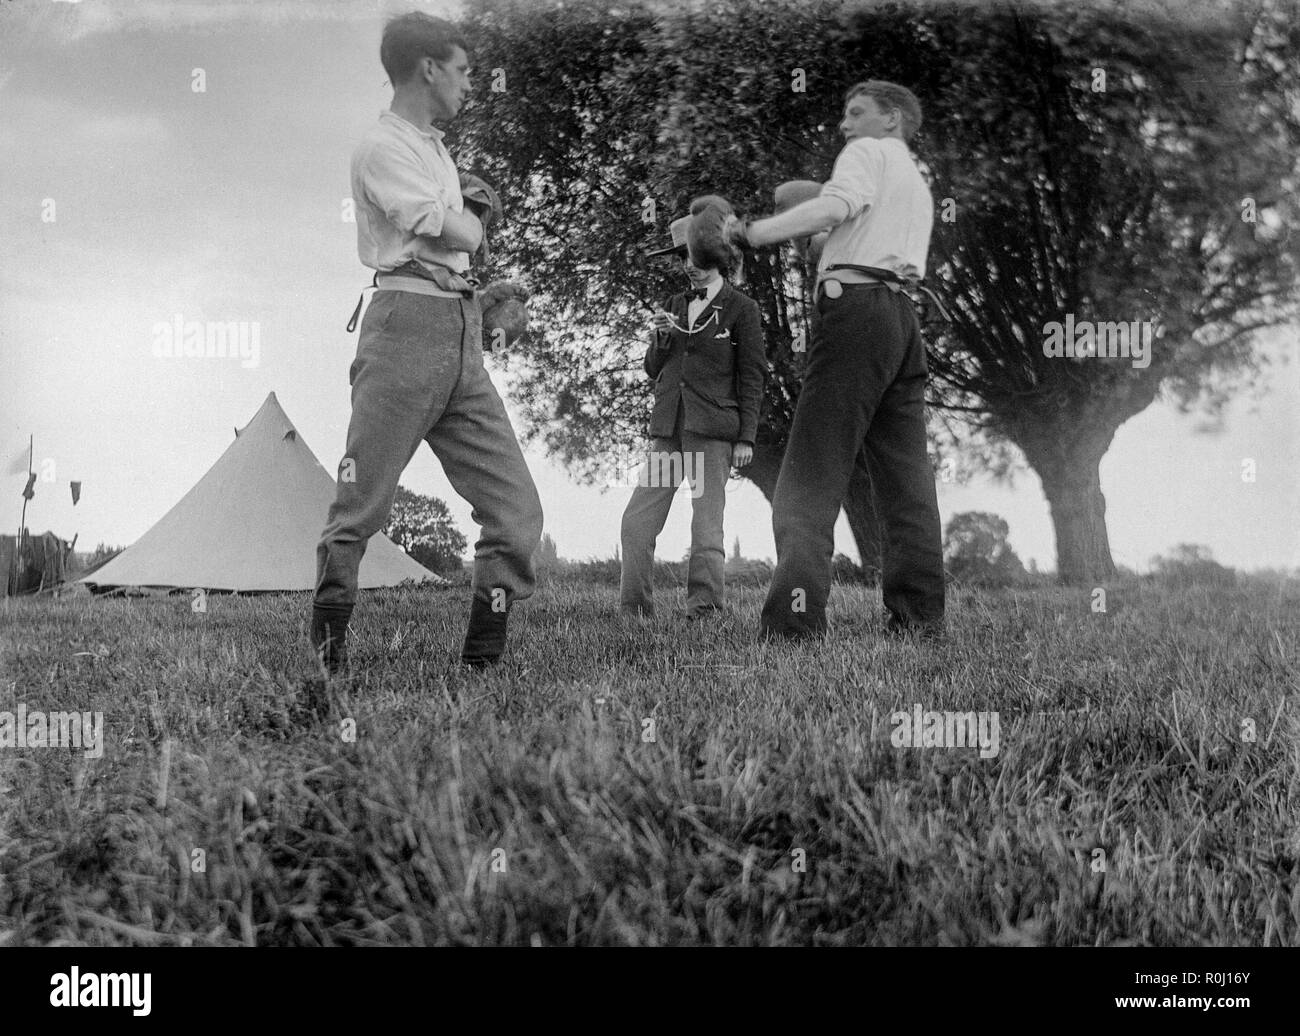 Edwardian black and white photograph showing two boys, or young men, on a camping trip in a field in England, squaring up for a boxing match, complete with vintage boxing gloves. A third boy acting as referee and timekeeper. - Stock Image